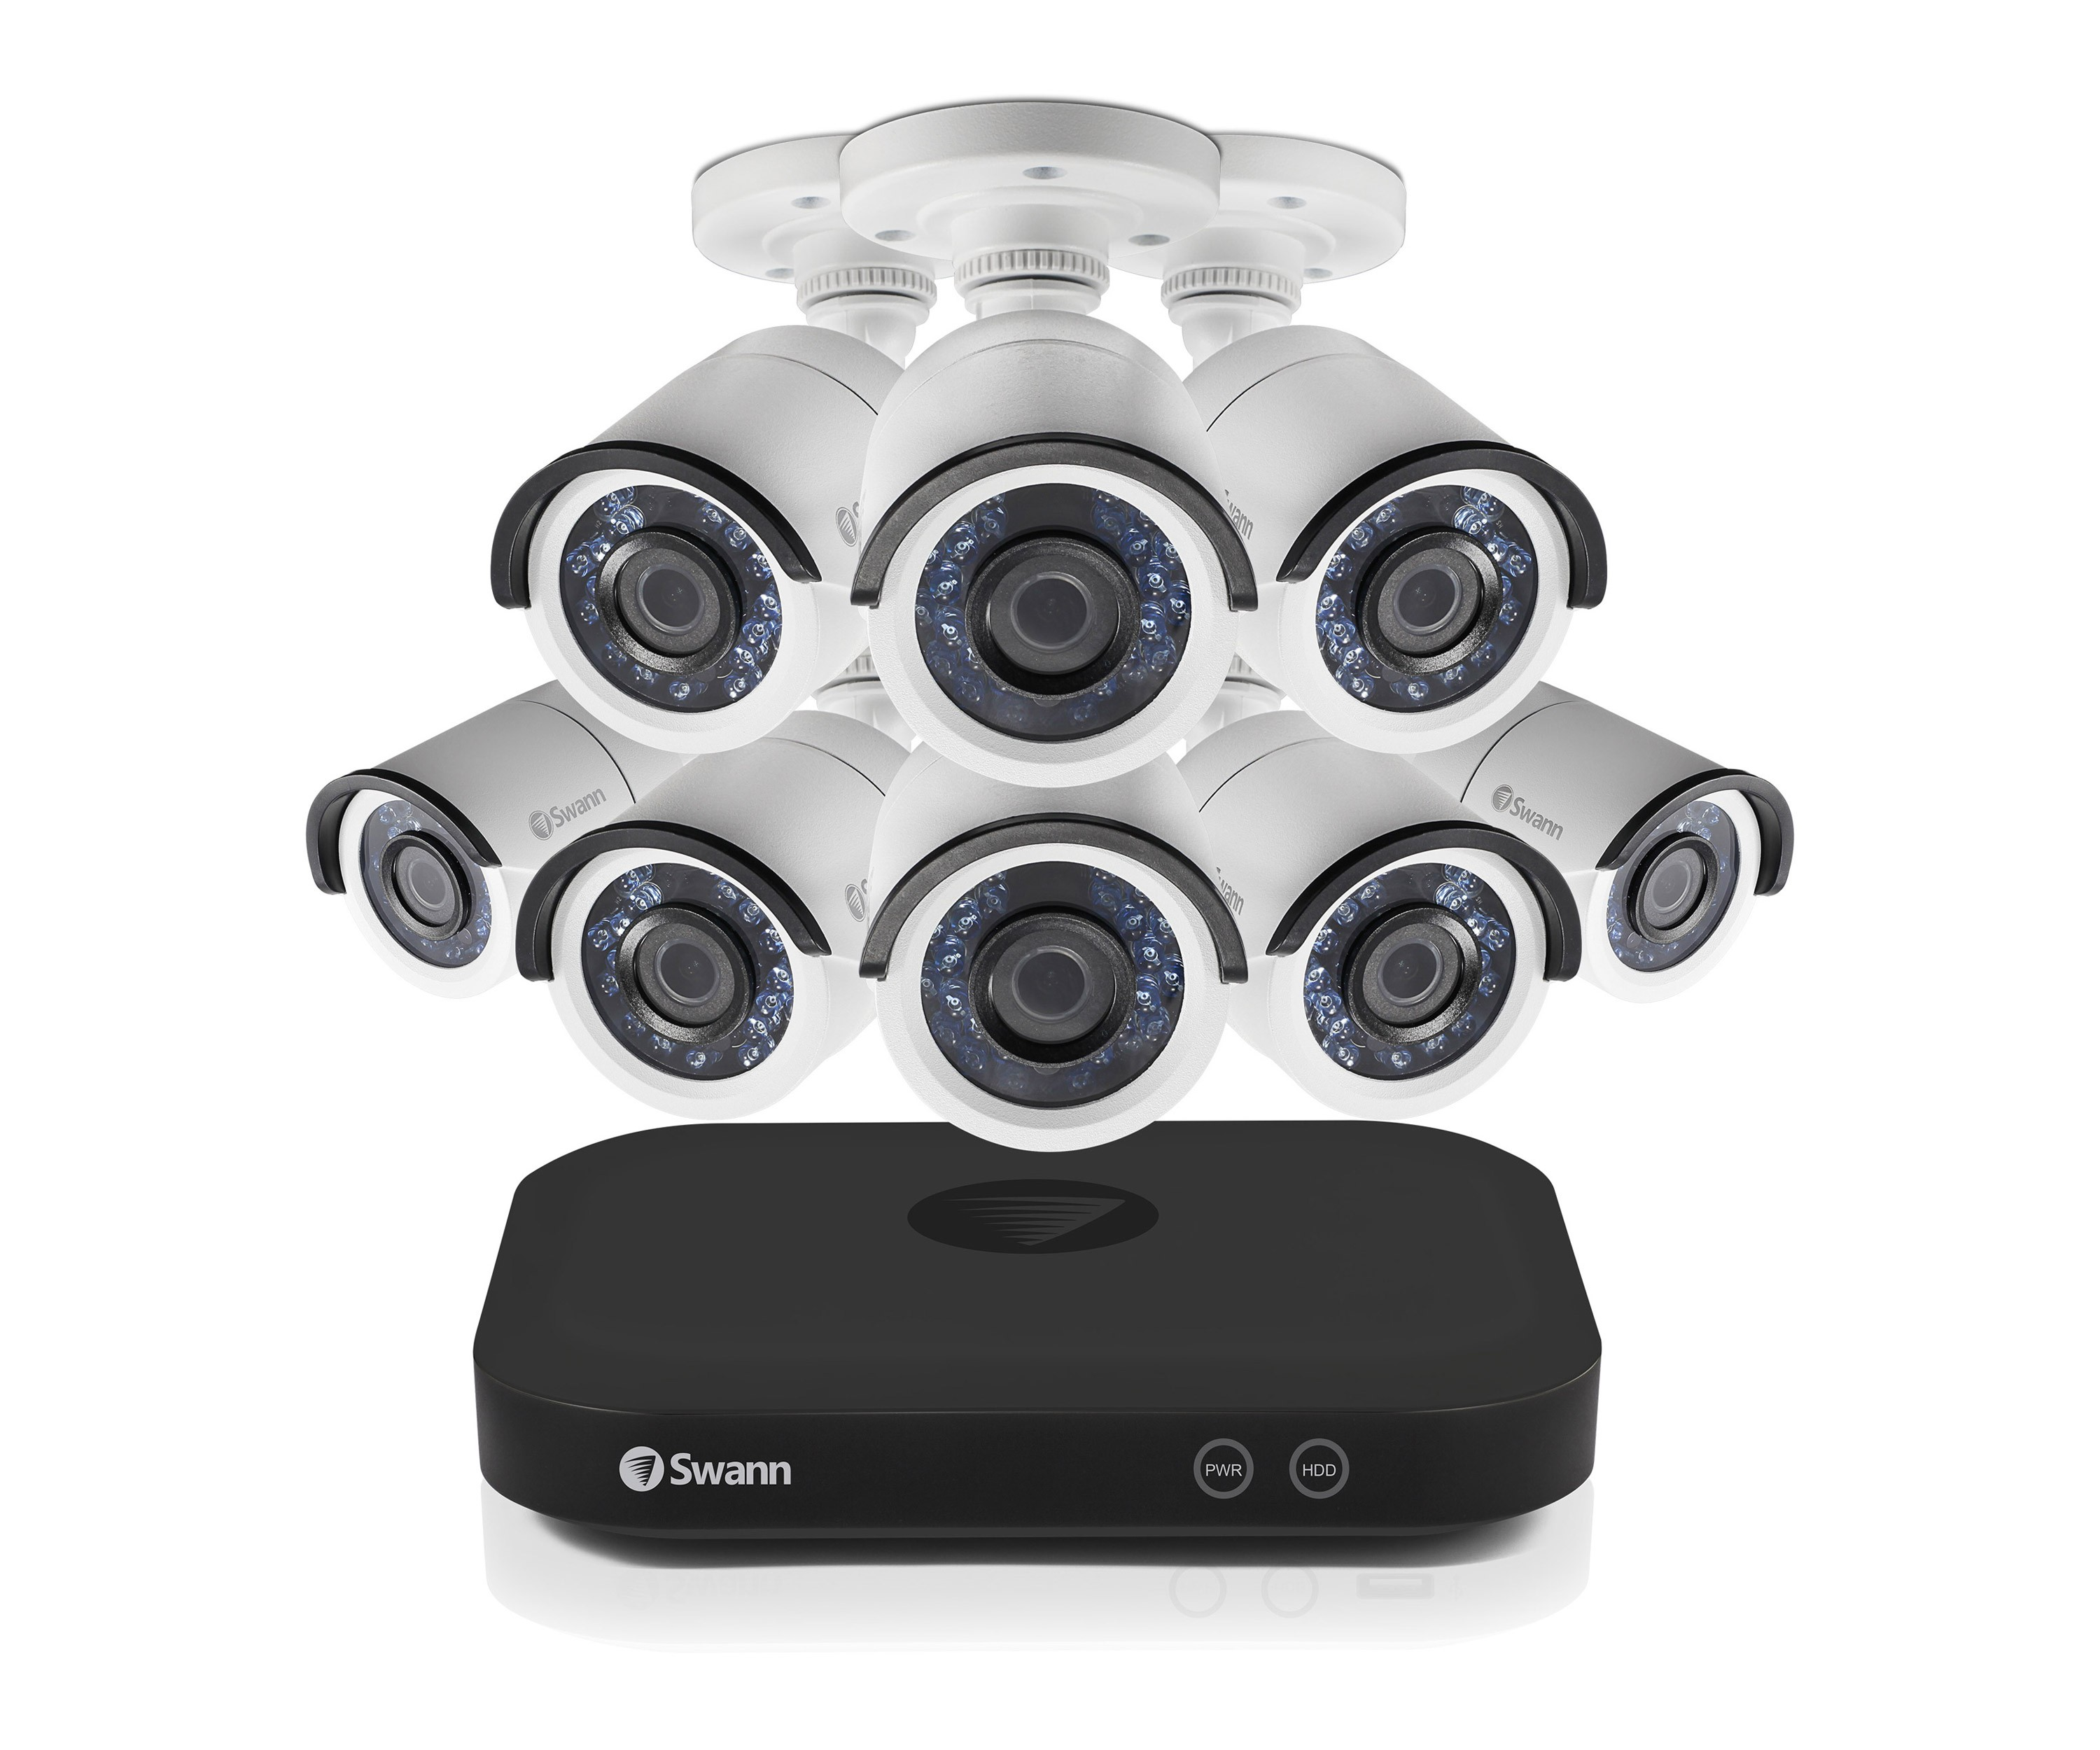 SWDVK-849008 Swann 8 Channel Security System: 5MP Super HD DVR with 2TB HDD & 8 x 5MP Bullet Cameras (Discontinued) -